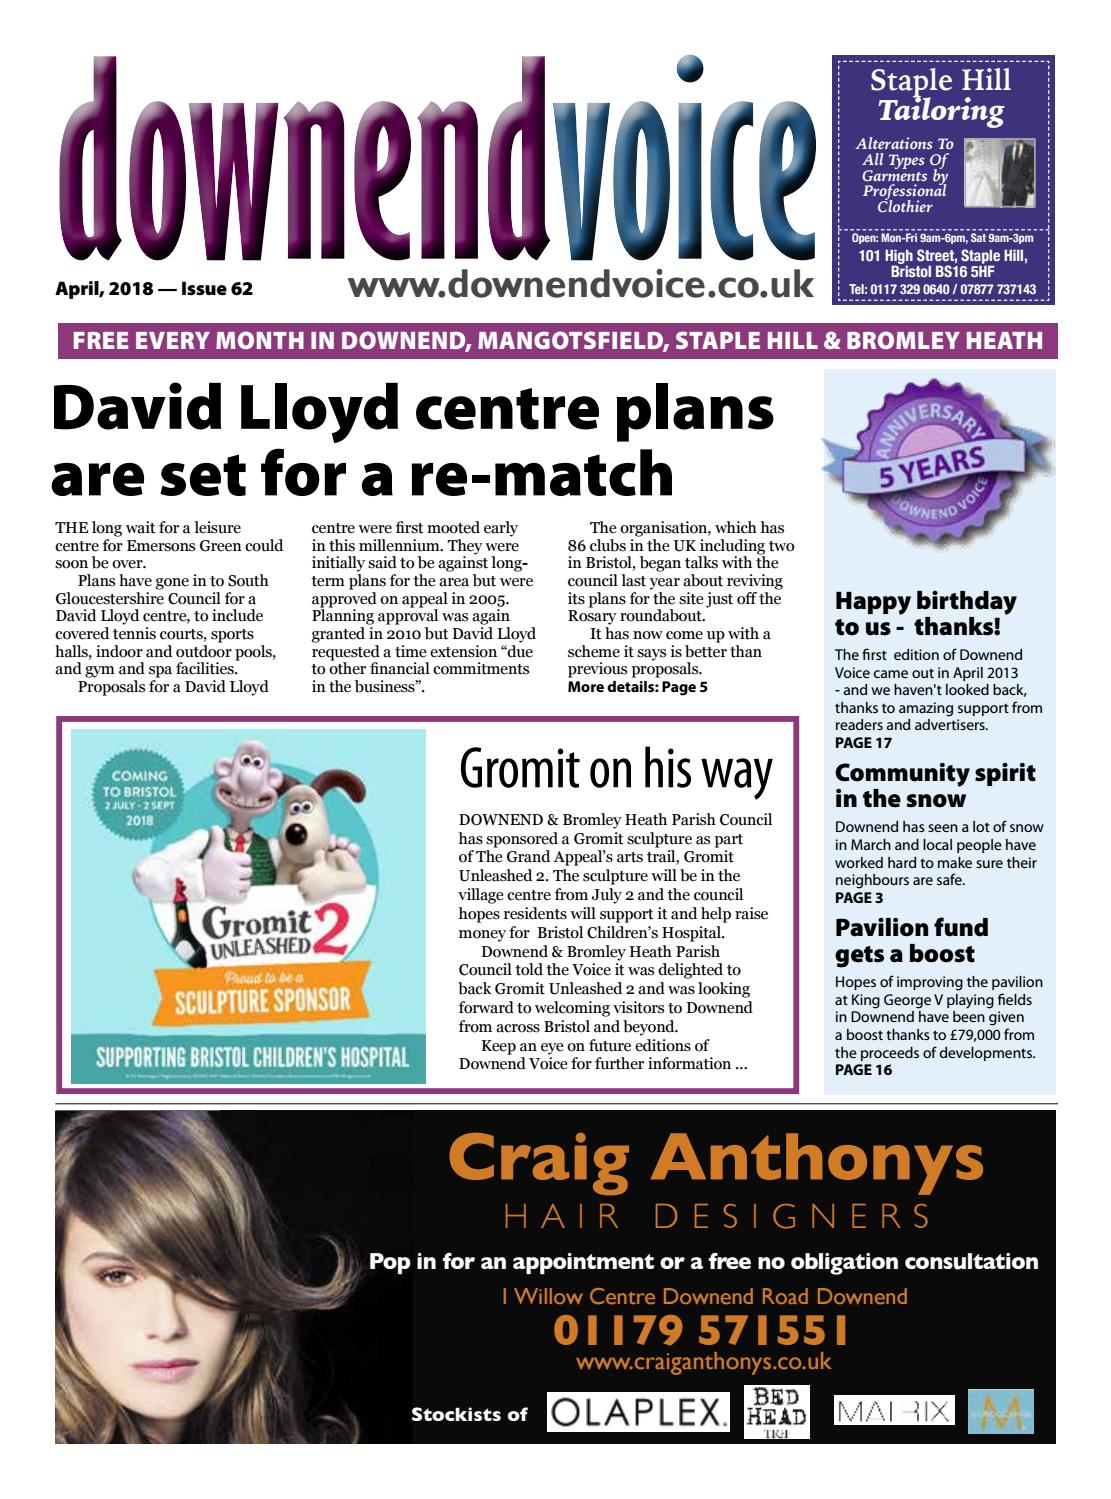 738322cf3 Downend Voice April 2018 by Gary Brindle - issuu